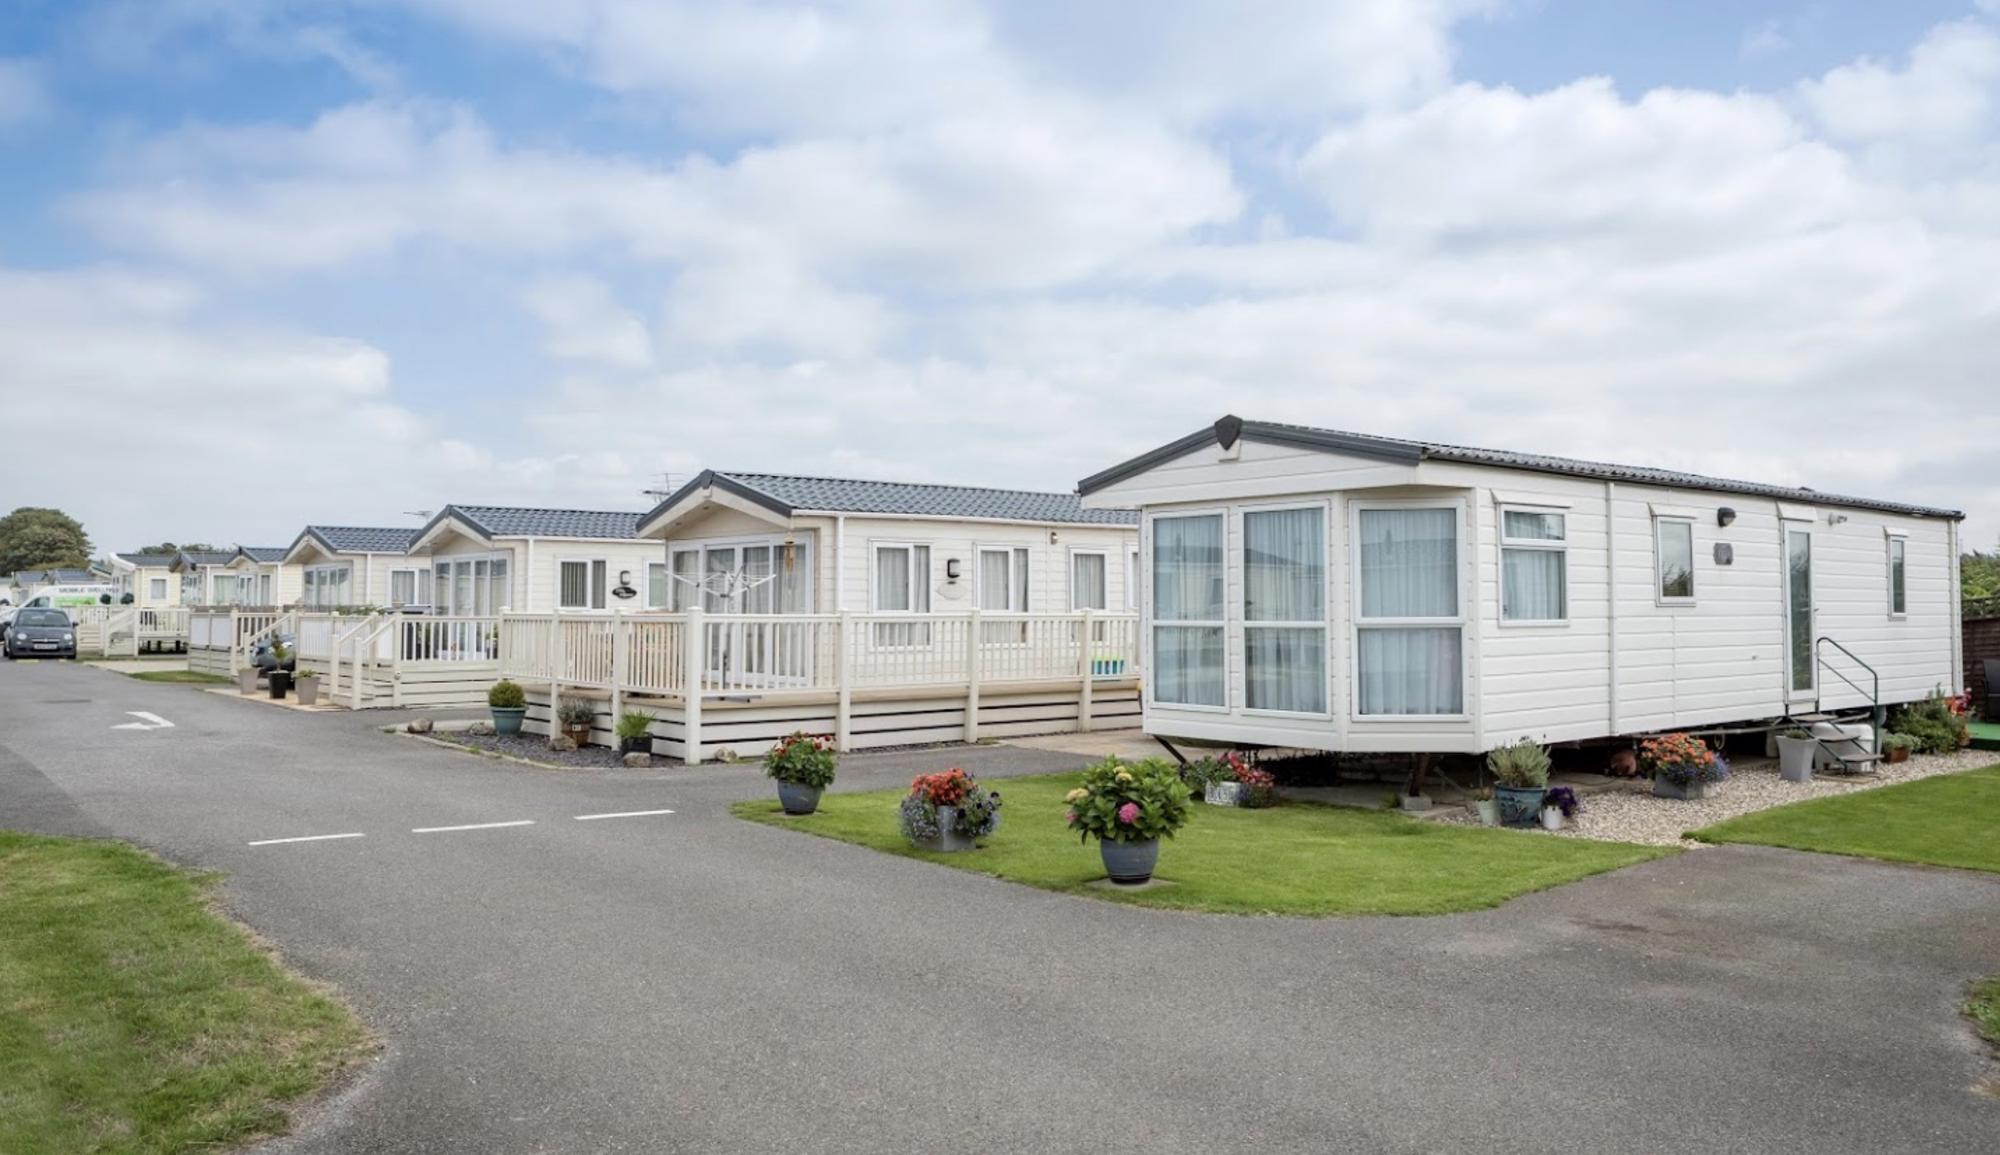 Find the best Holiday parks including Hendra Holiday Park and Auchenlarie